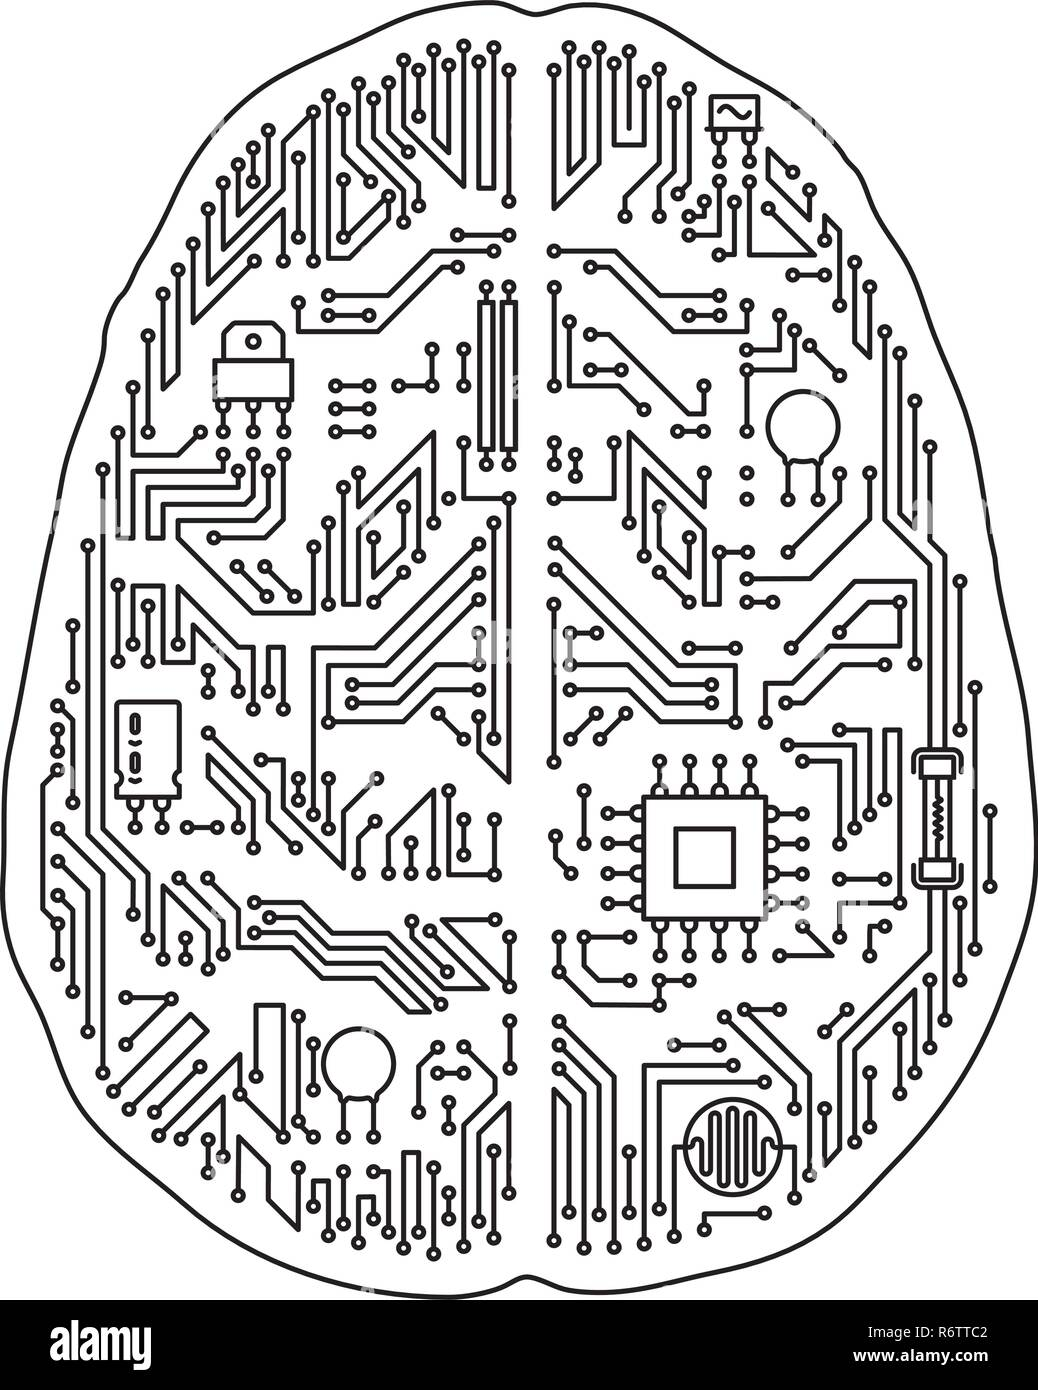 Motherboard human brain shaped isolated vector illustration. Black and white artificial intelligence and technology concept. - Stock Image